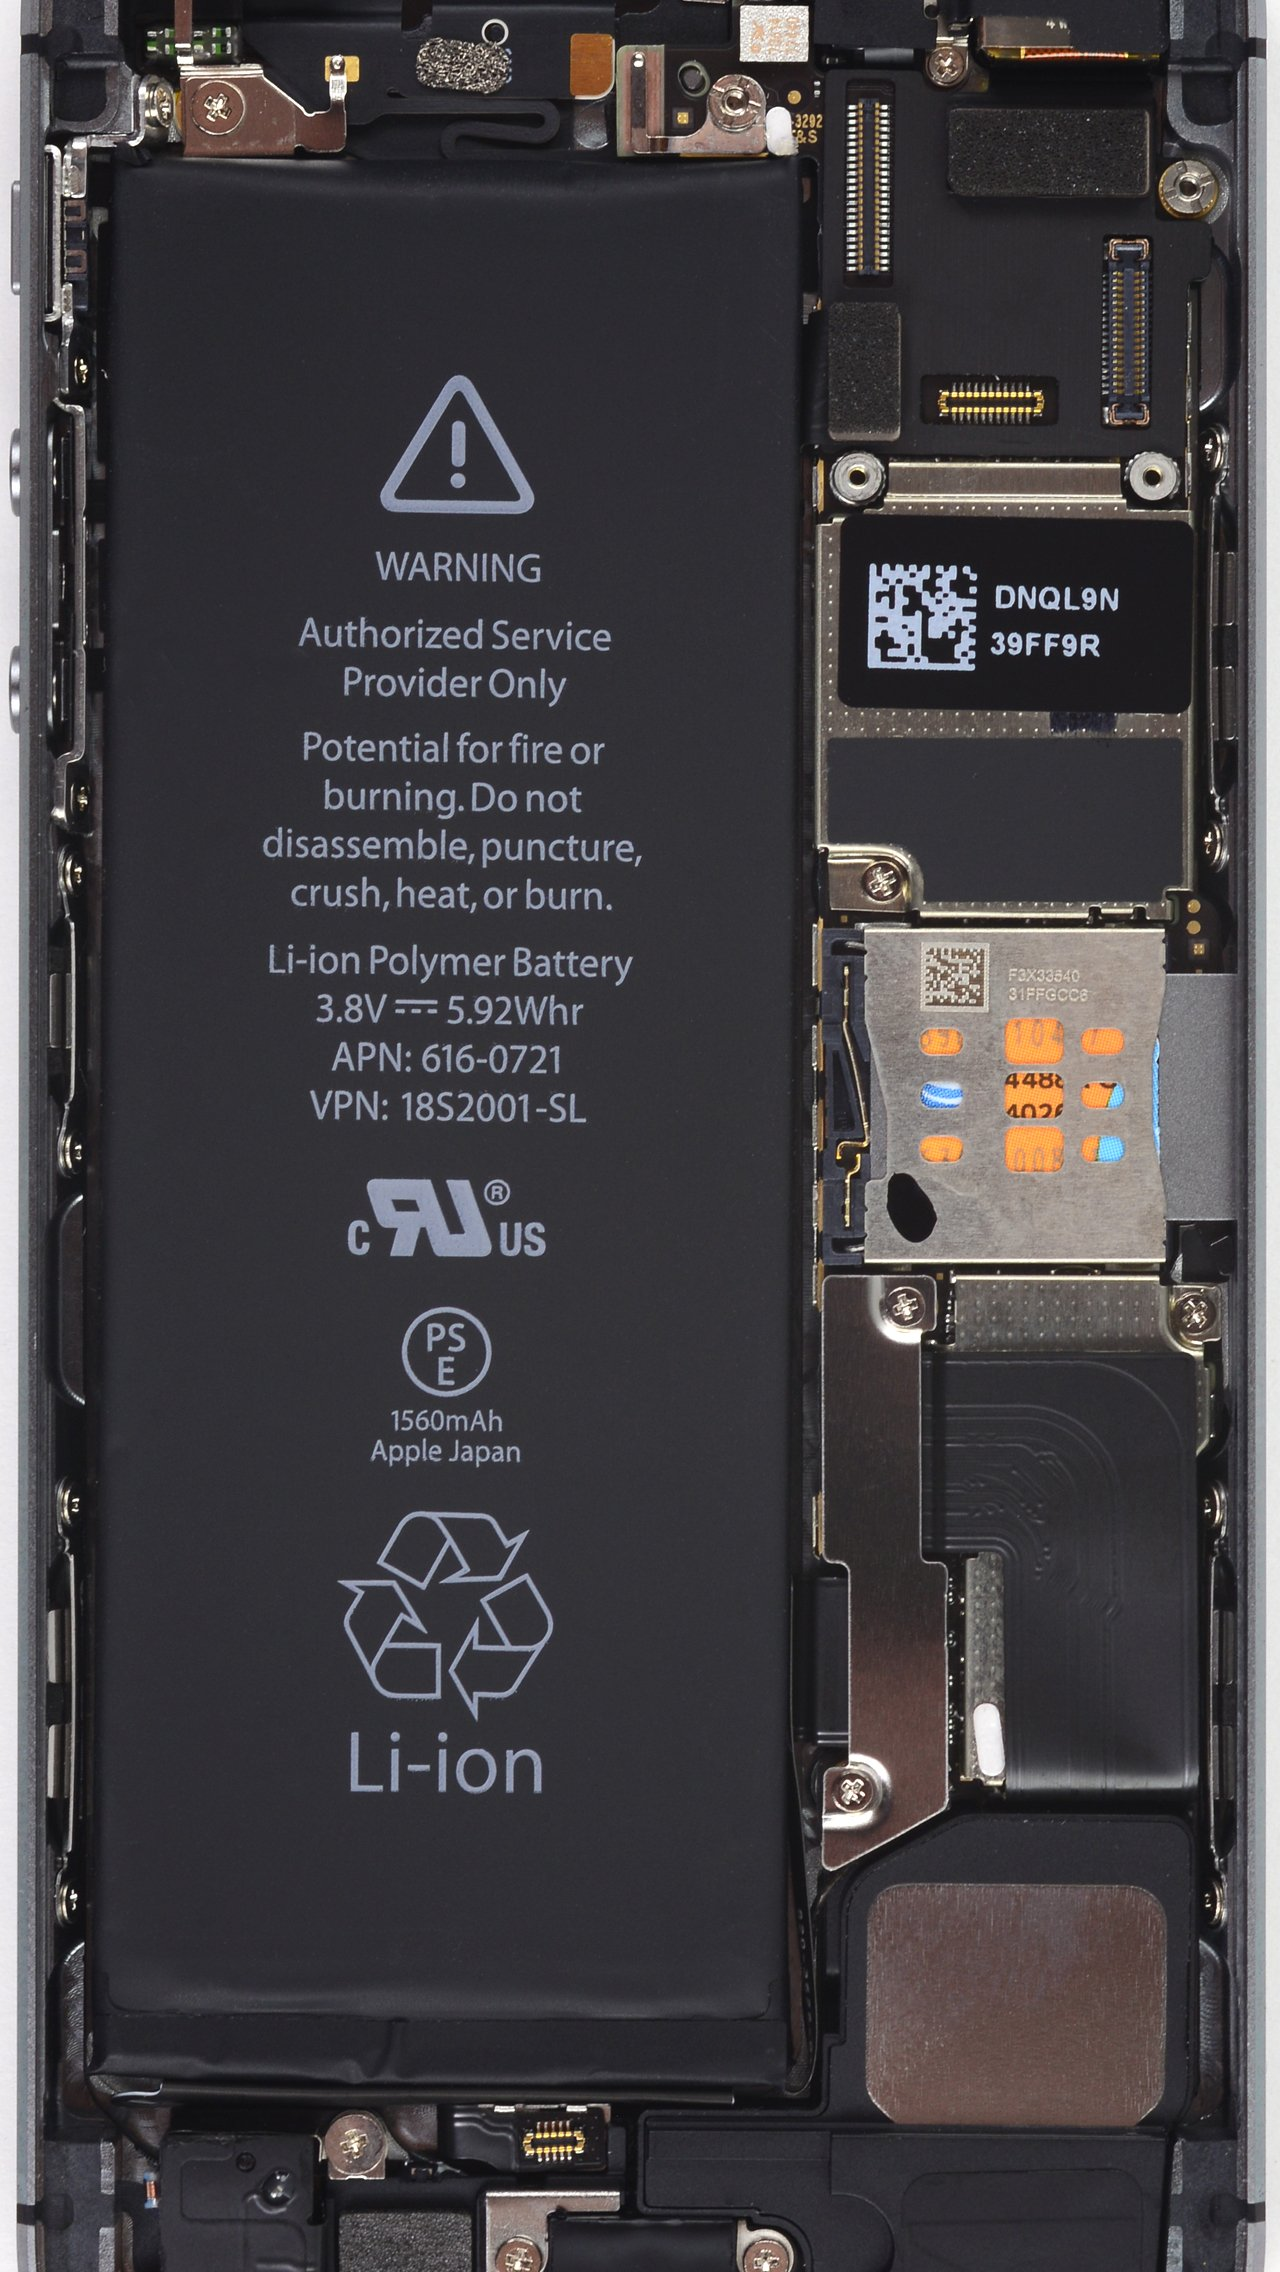 Iphone 5sc And Imac Internals Wallpapers Ifixit